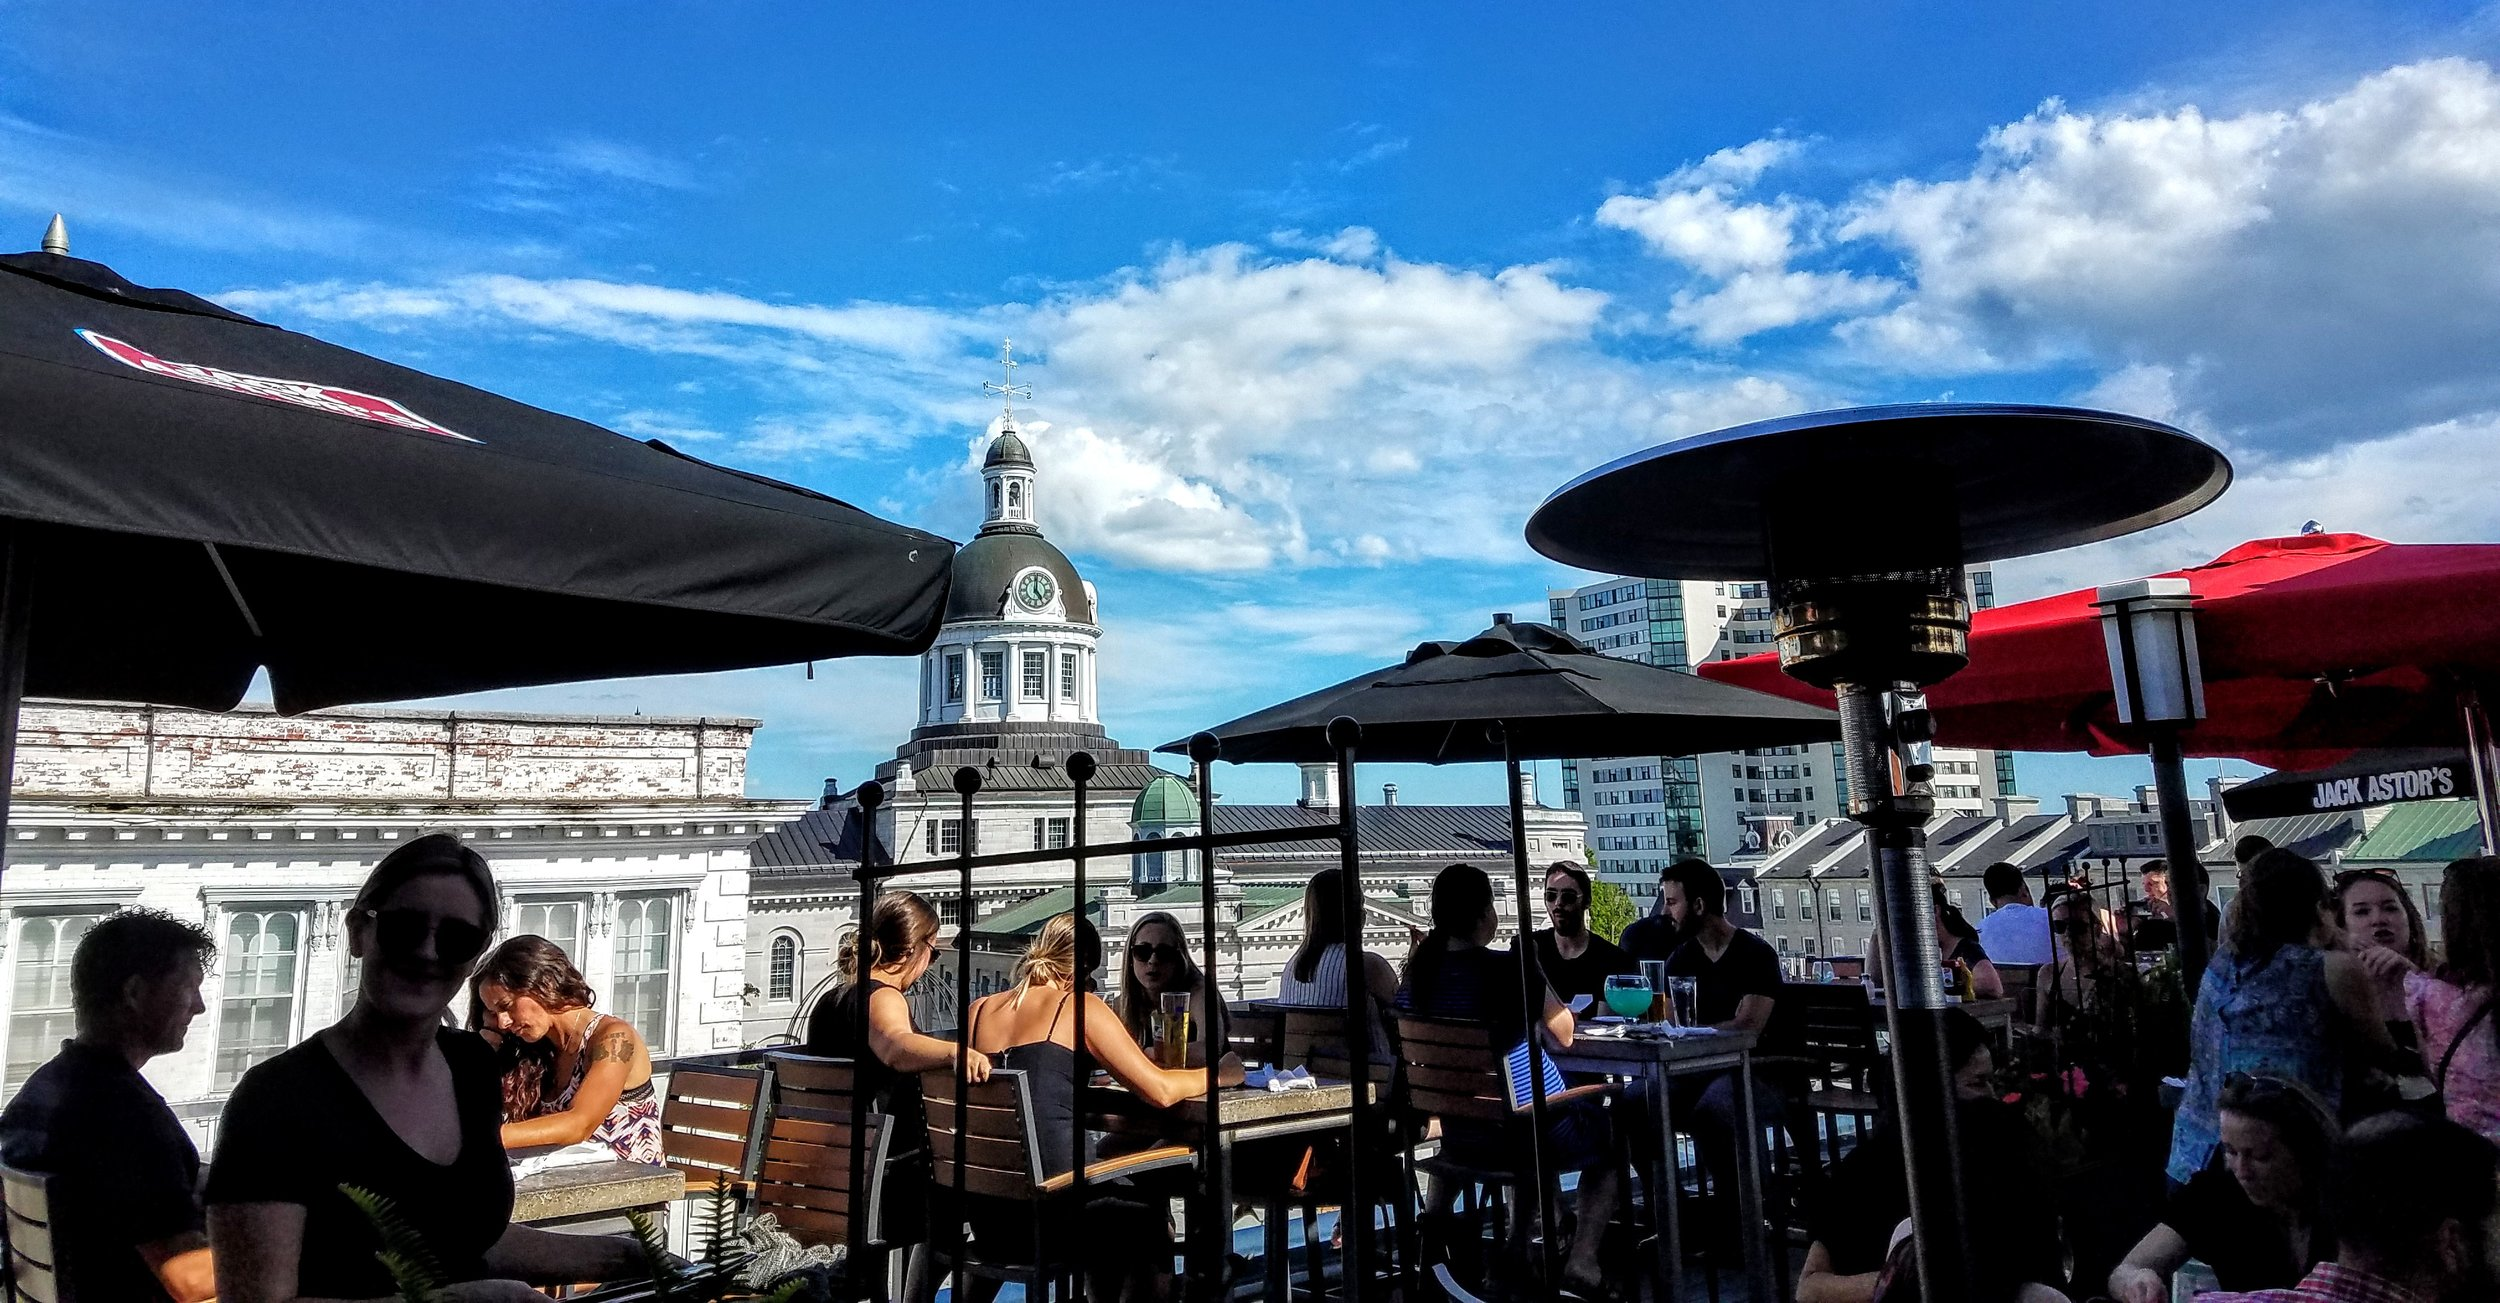 A busy first day of summer on a roof-top restaurant over looking the Kingston City Hall